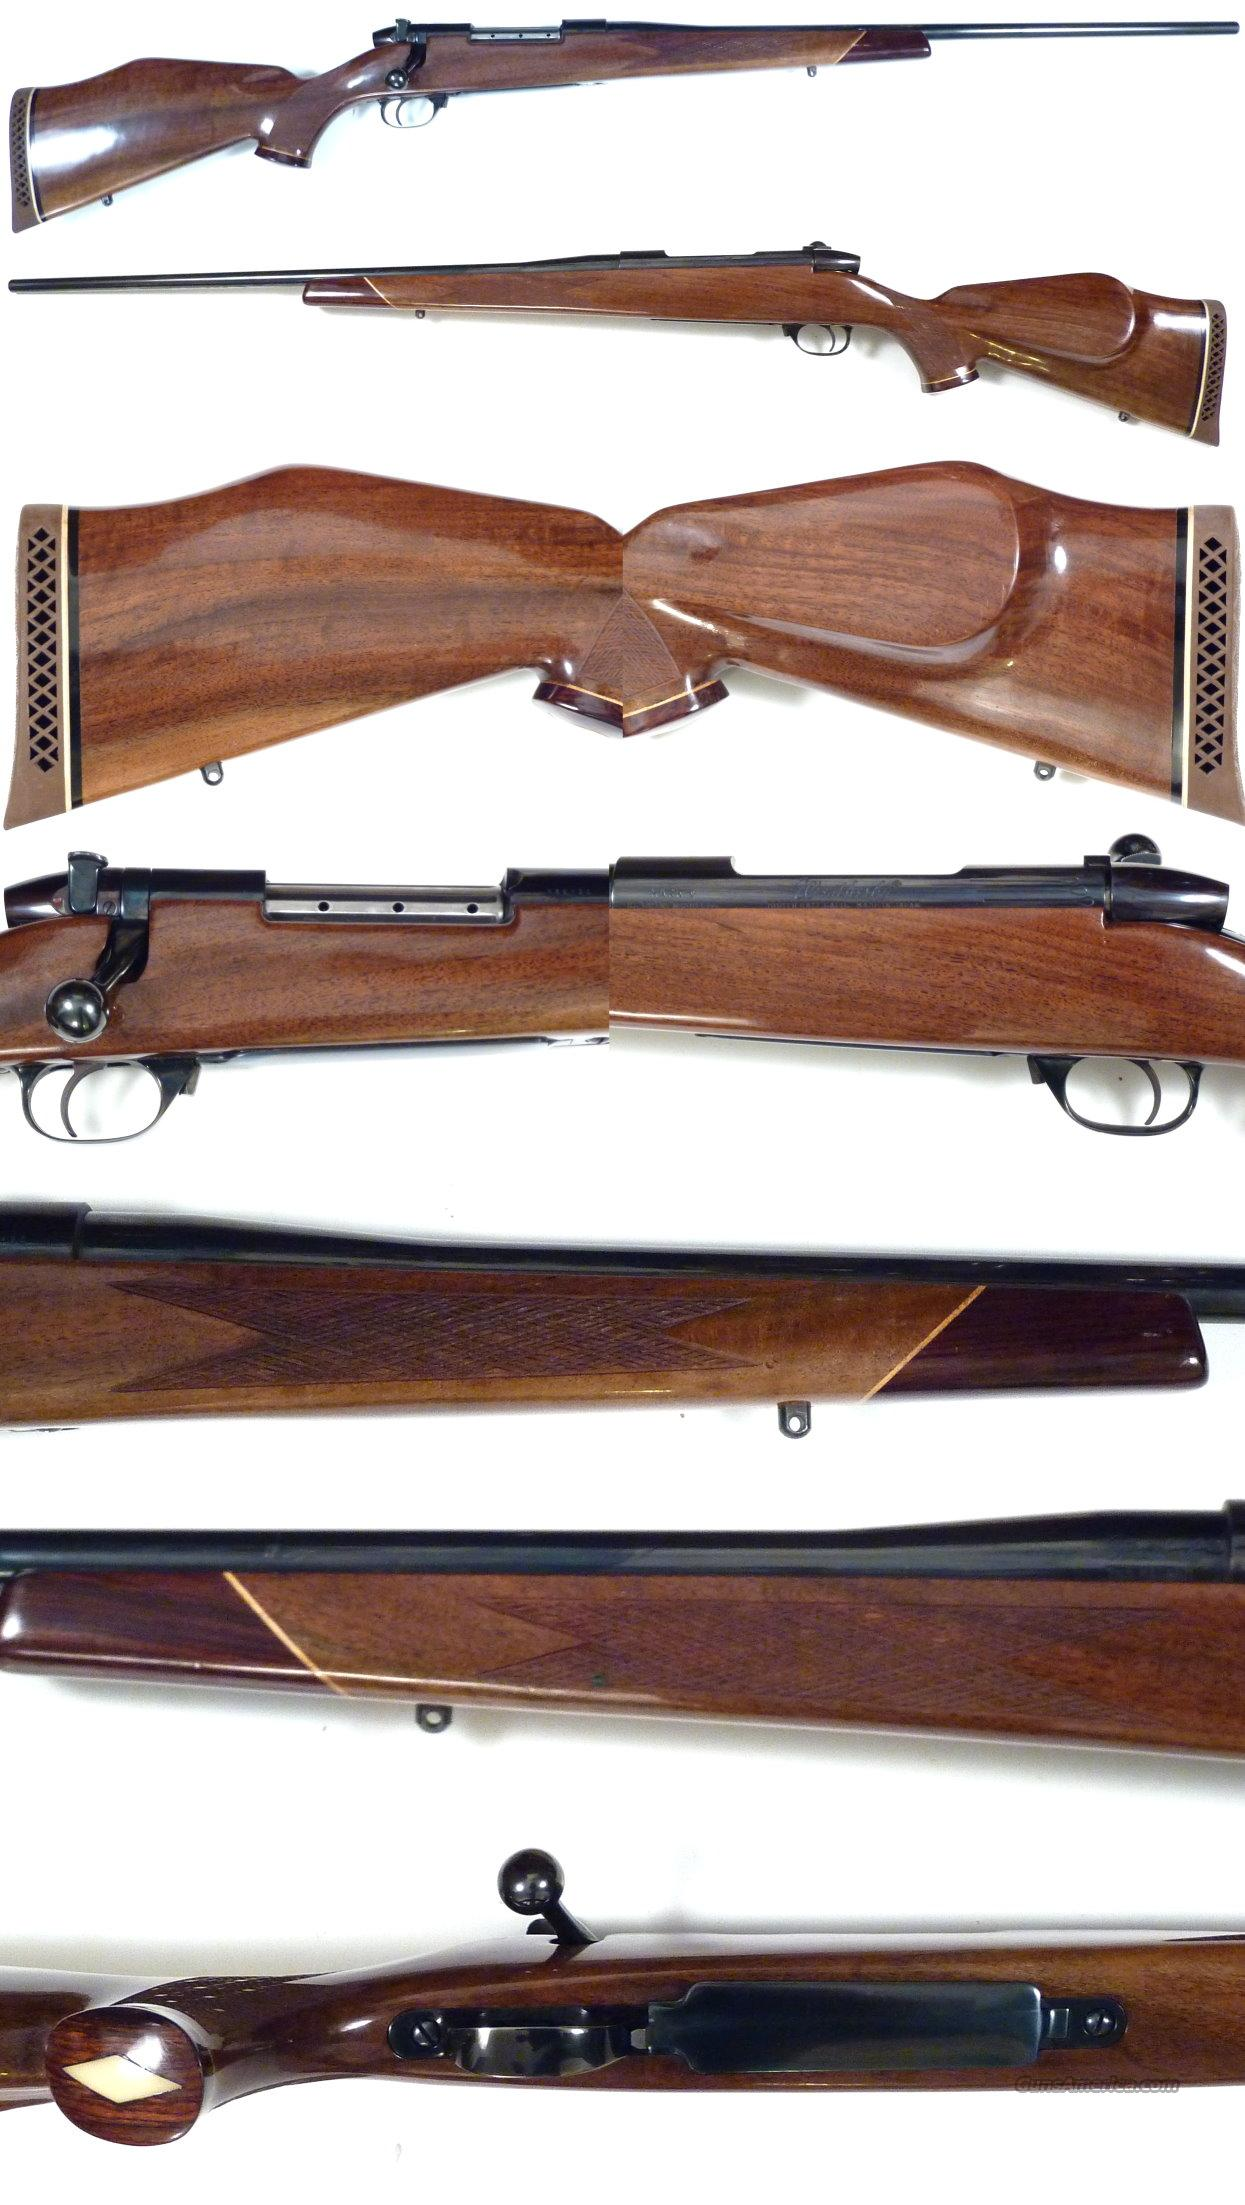 Weatherby Mark V Deluxe 7mm Wthy MAG  Guns > Rifles > Weatherby Rifles > Sporting